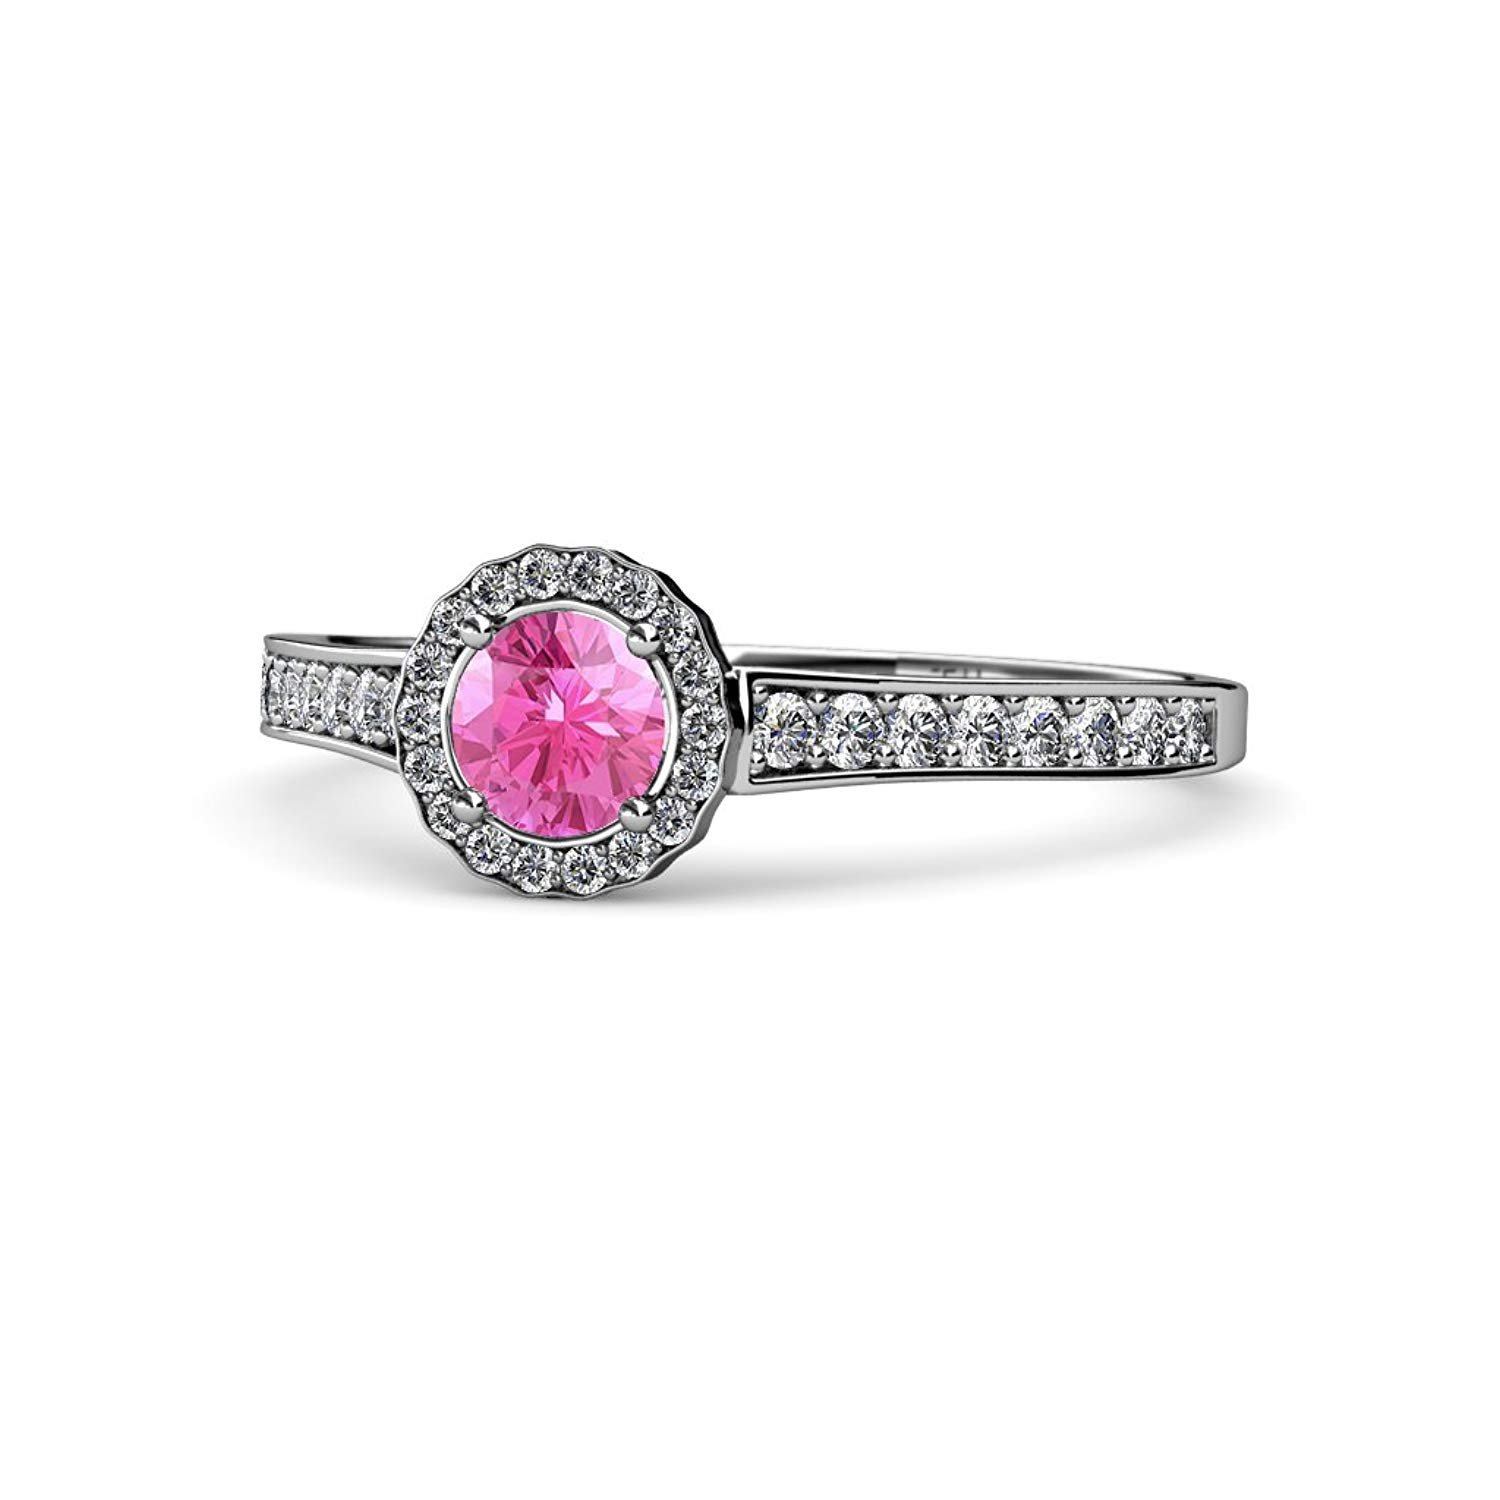 Pink Sapphire and Diamond (SI2-I1, G-H) Halo Engagement Ring 0.99 ct tw in 14K White Gold.size 7.0 by TriJewels